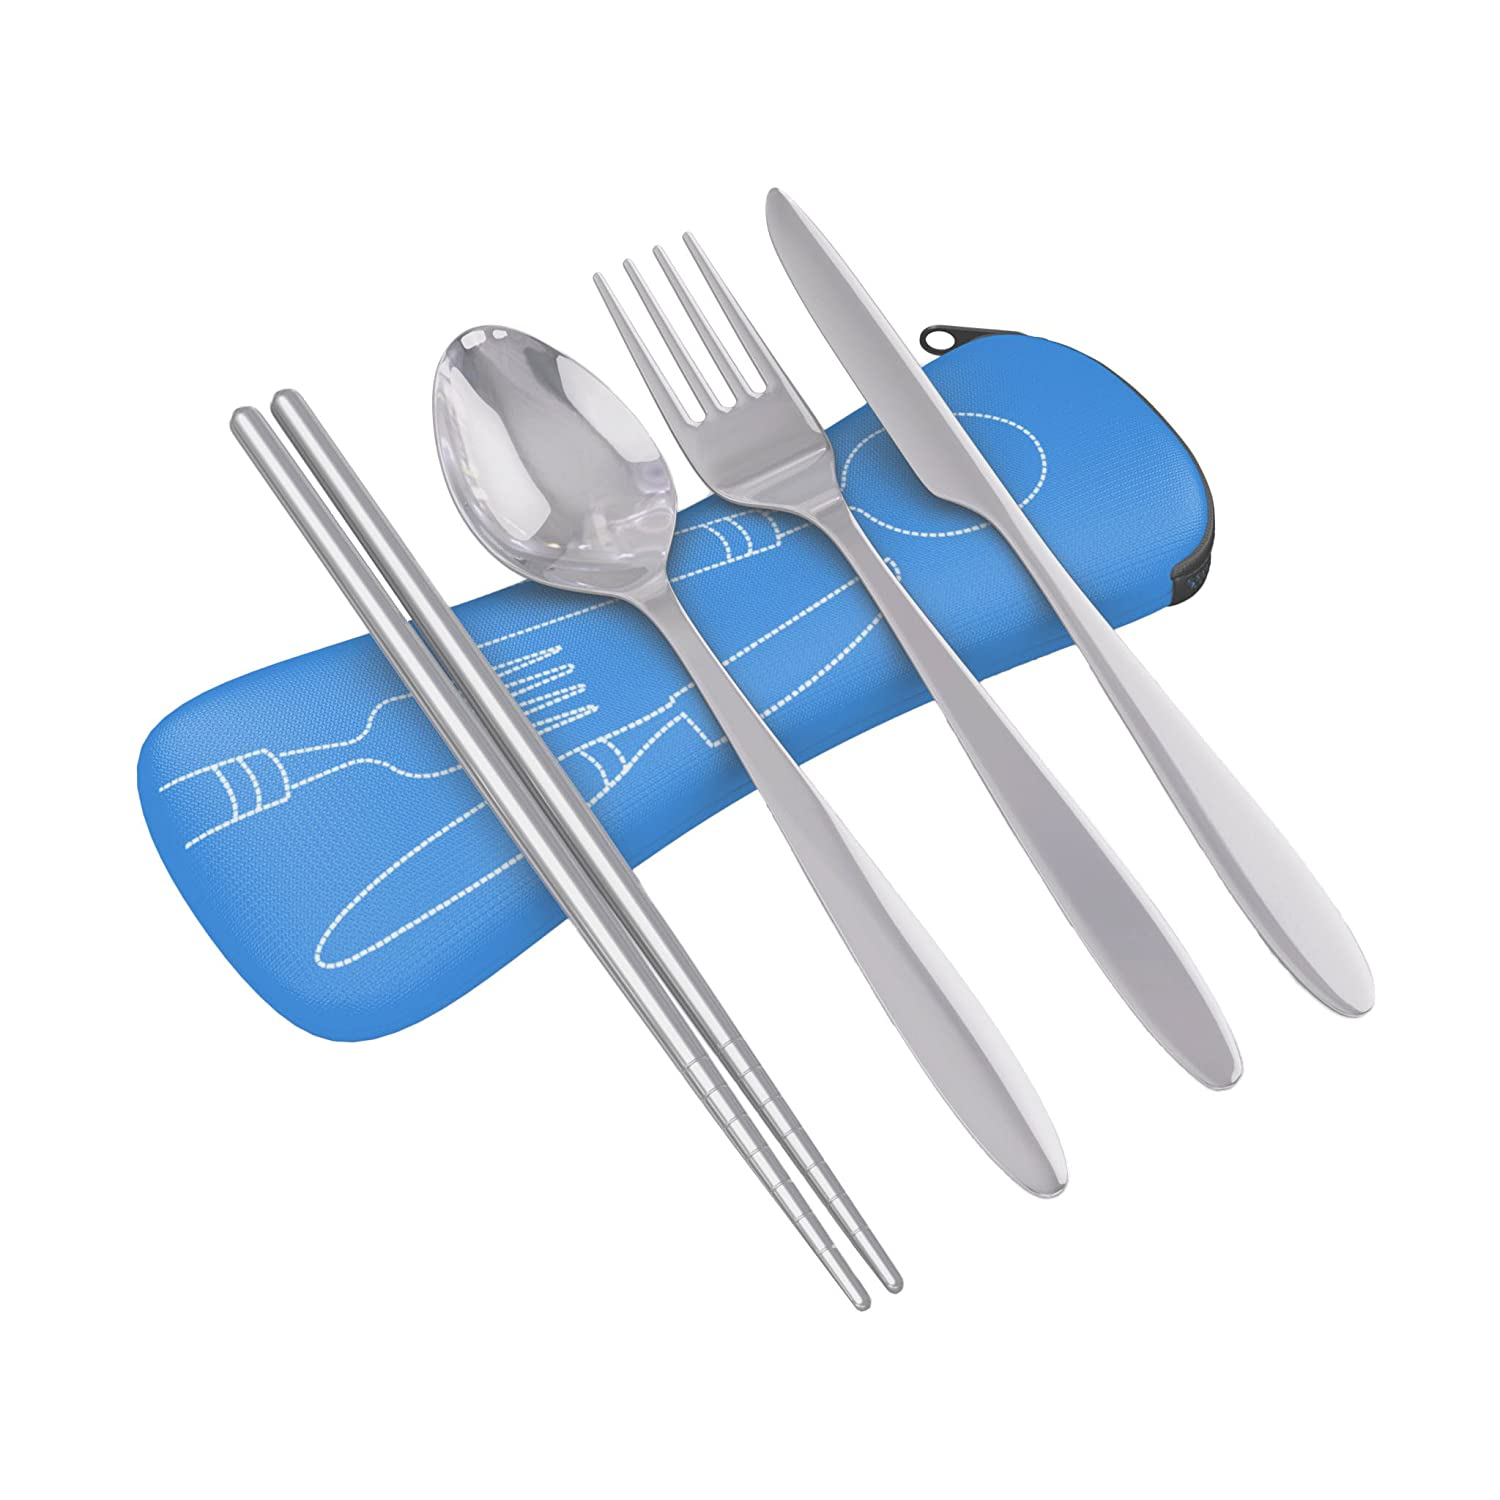 4 Piece Stainless Steel (Knife, Fork, Spoon, Chopsticks) Lightweight, Travel / Camping Cutlery Set with Neoprene Case Roaming Cooking